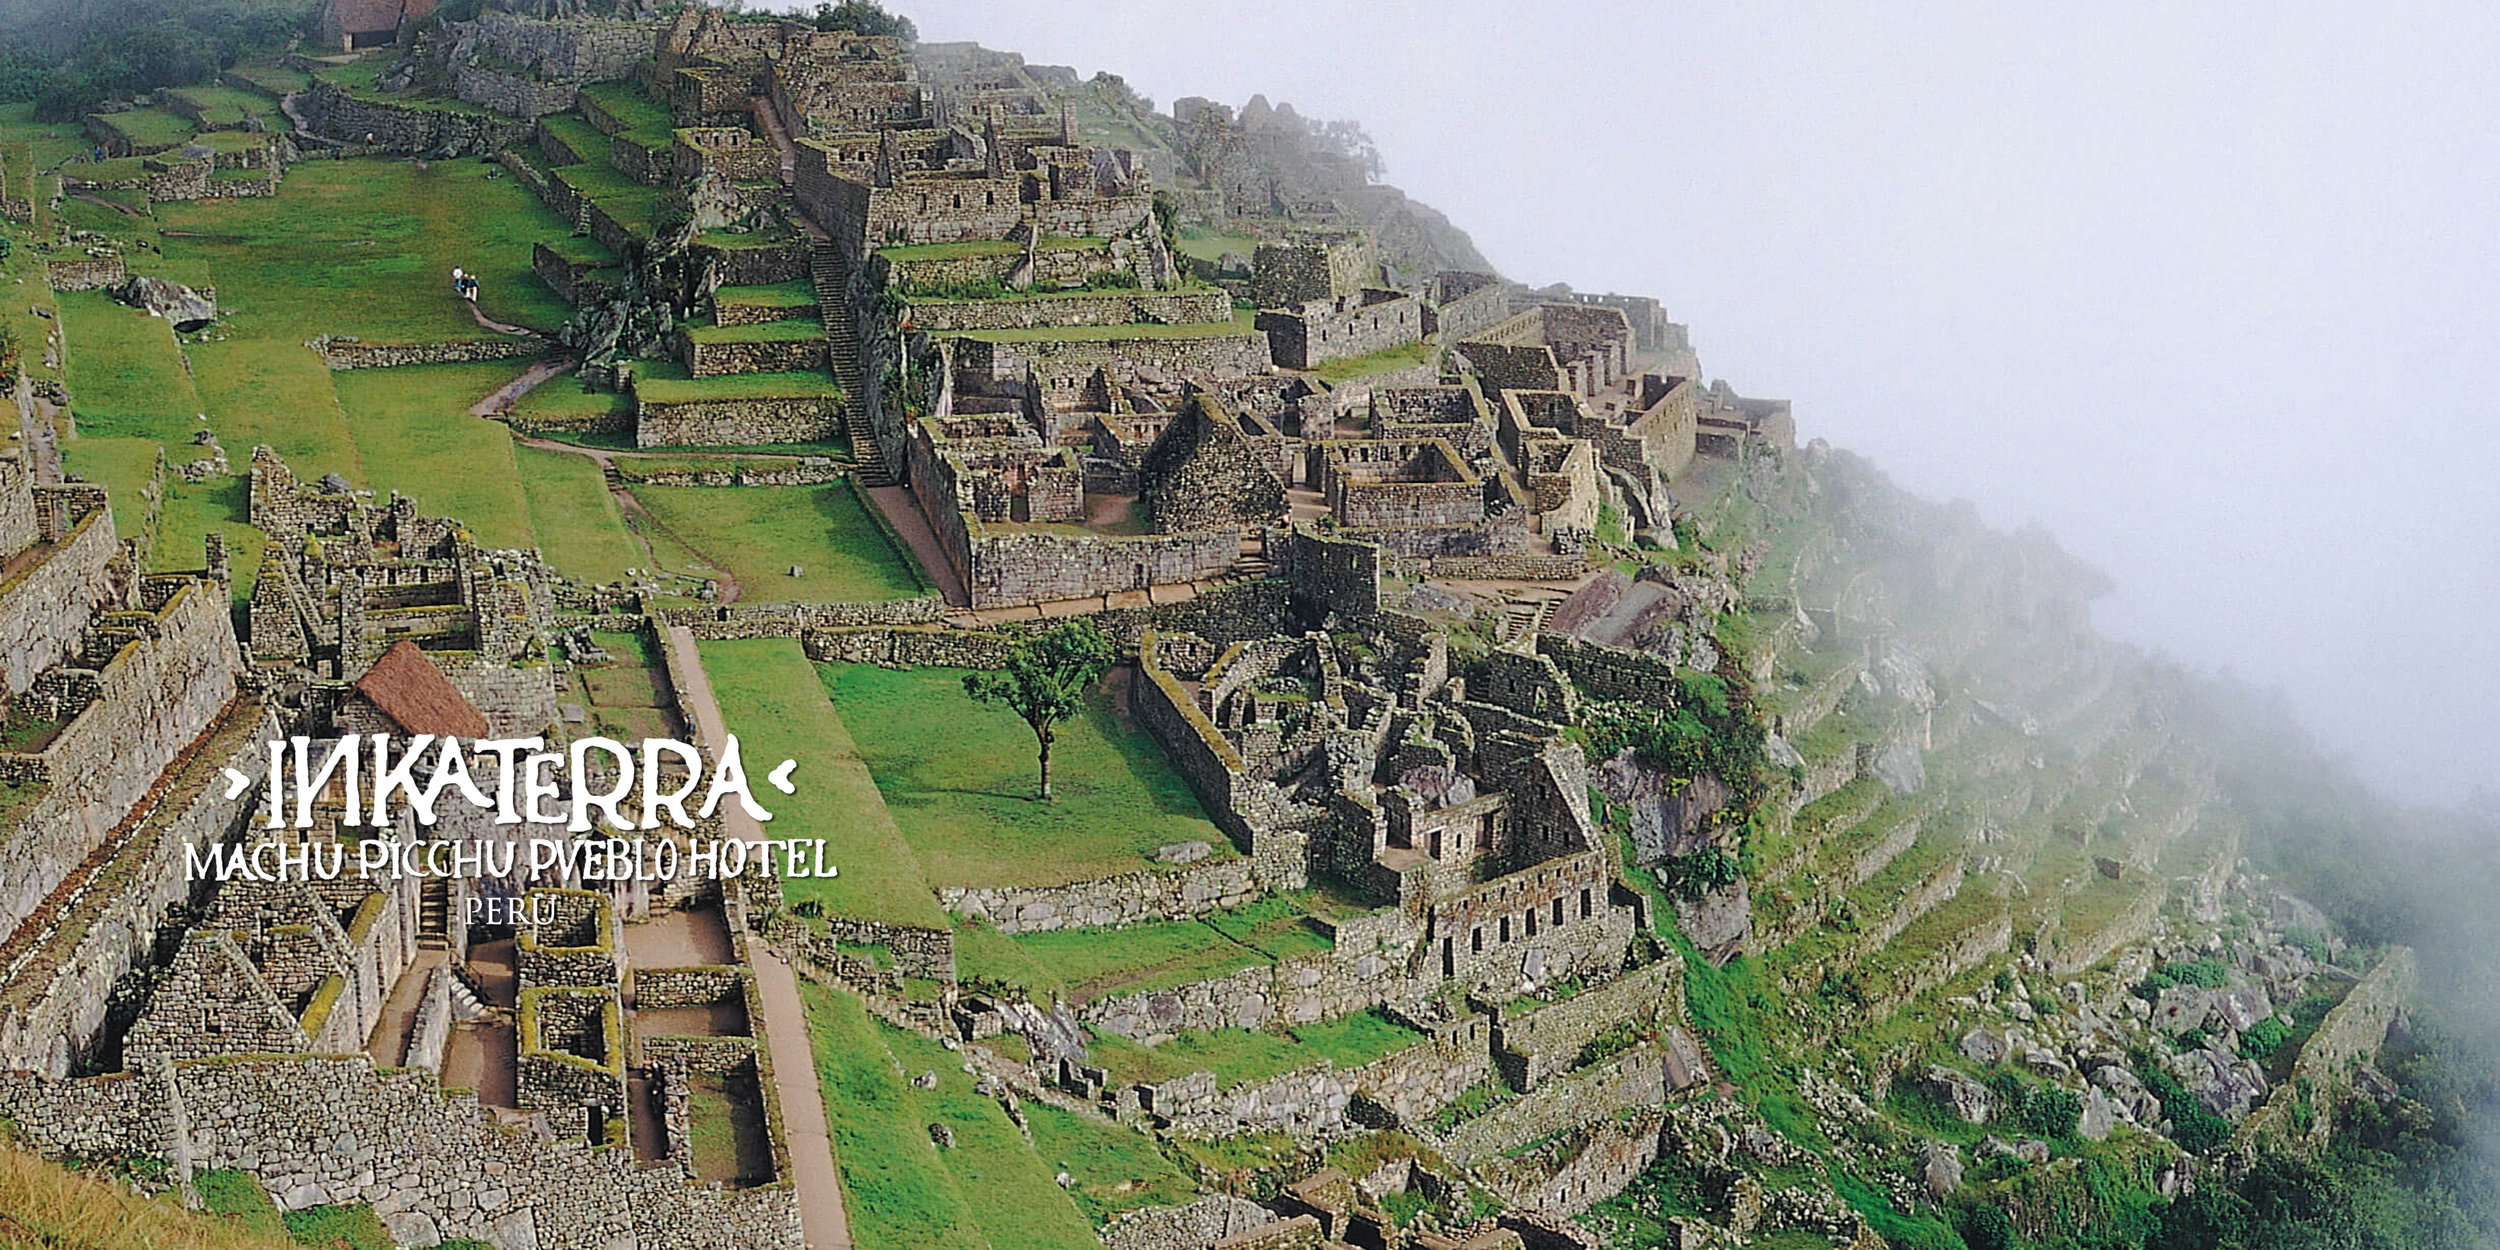 IT Machu Picchu Web Images3.jpg